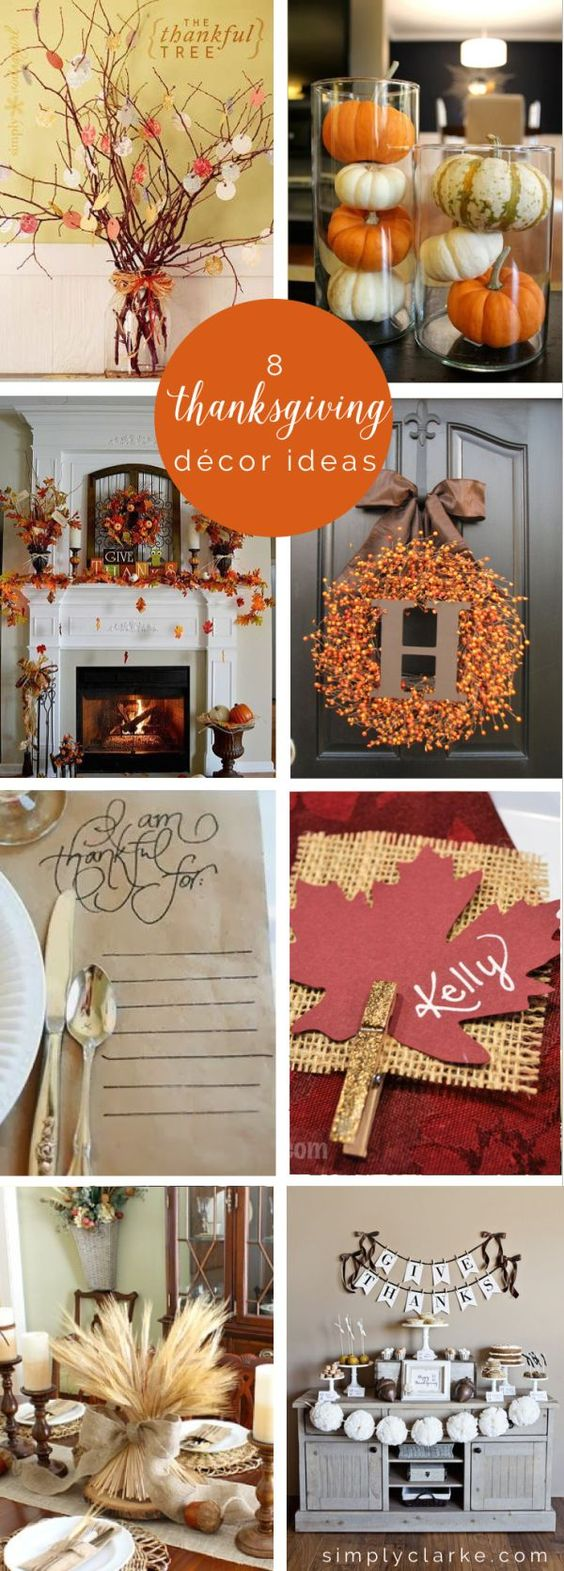 8 thanksgiving decor ideas crafts diy home